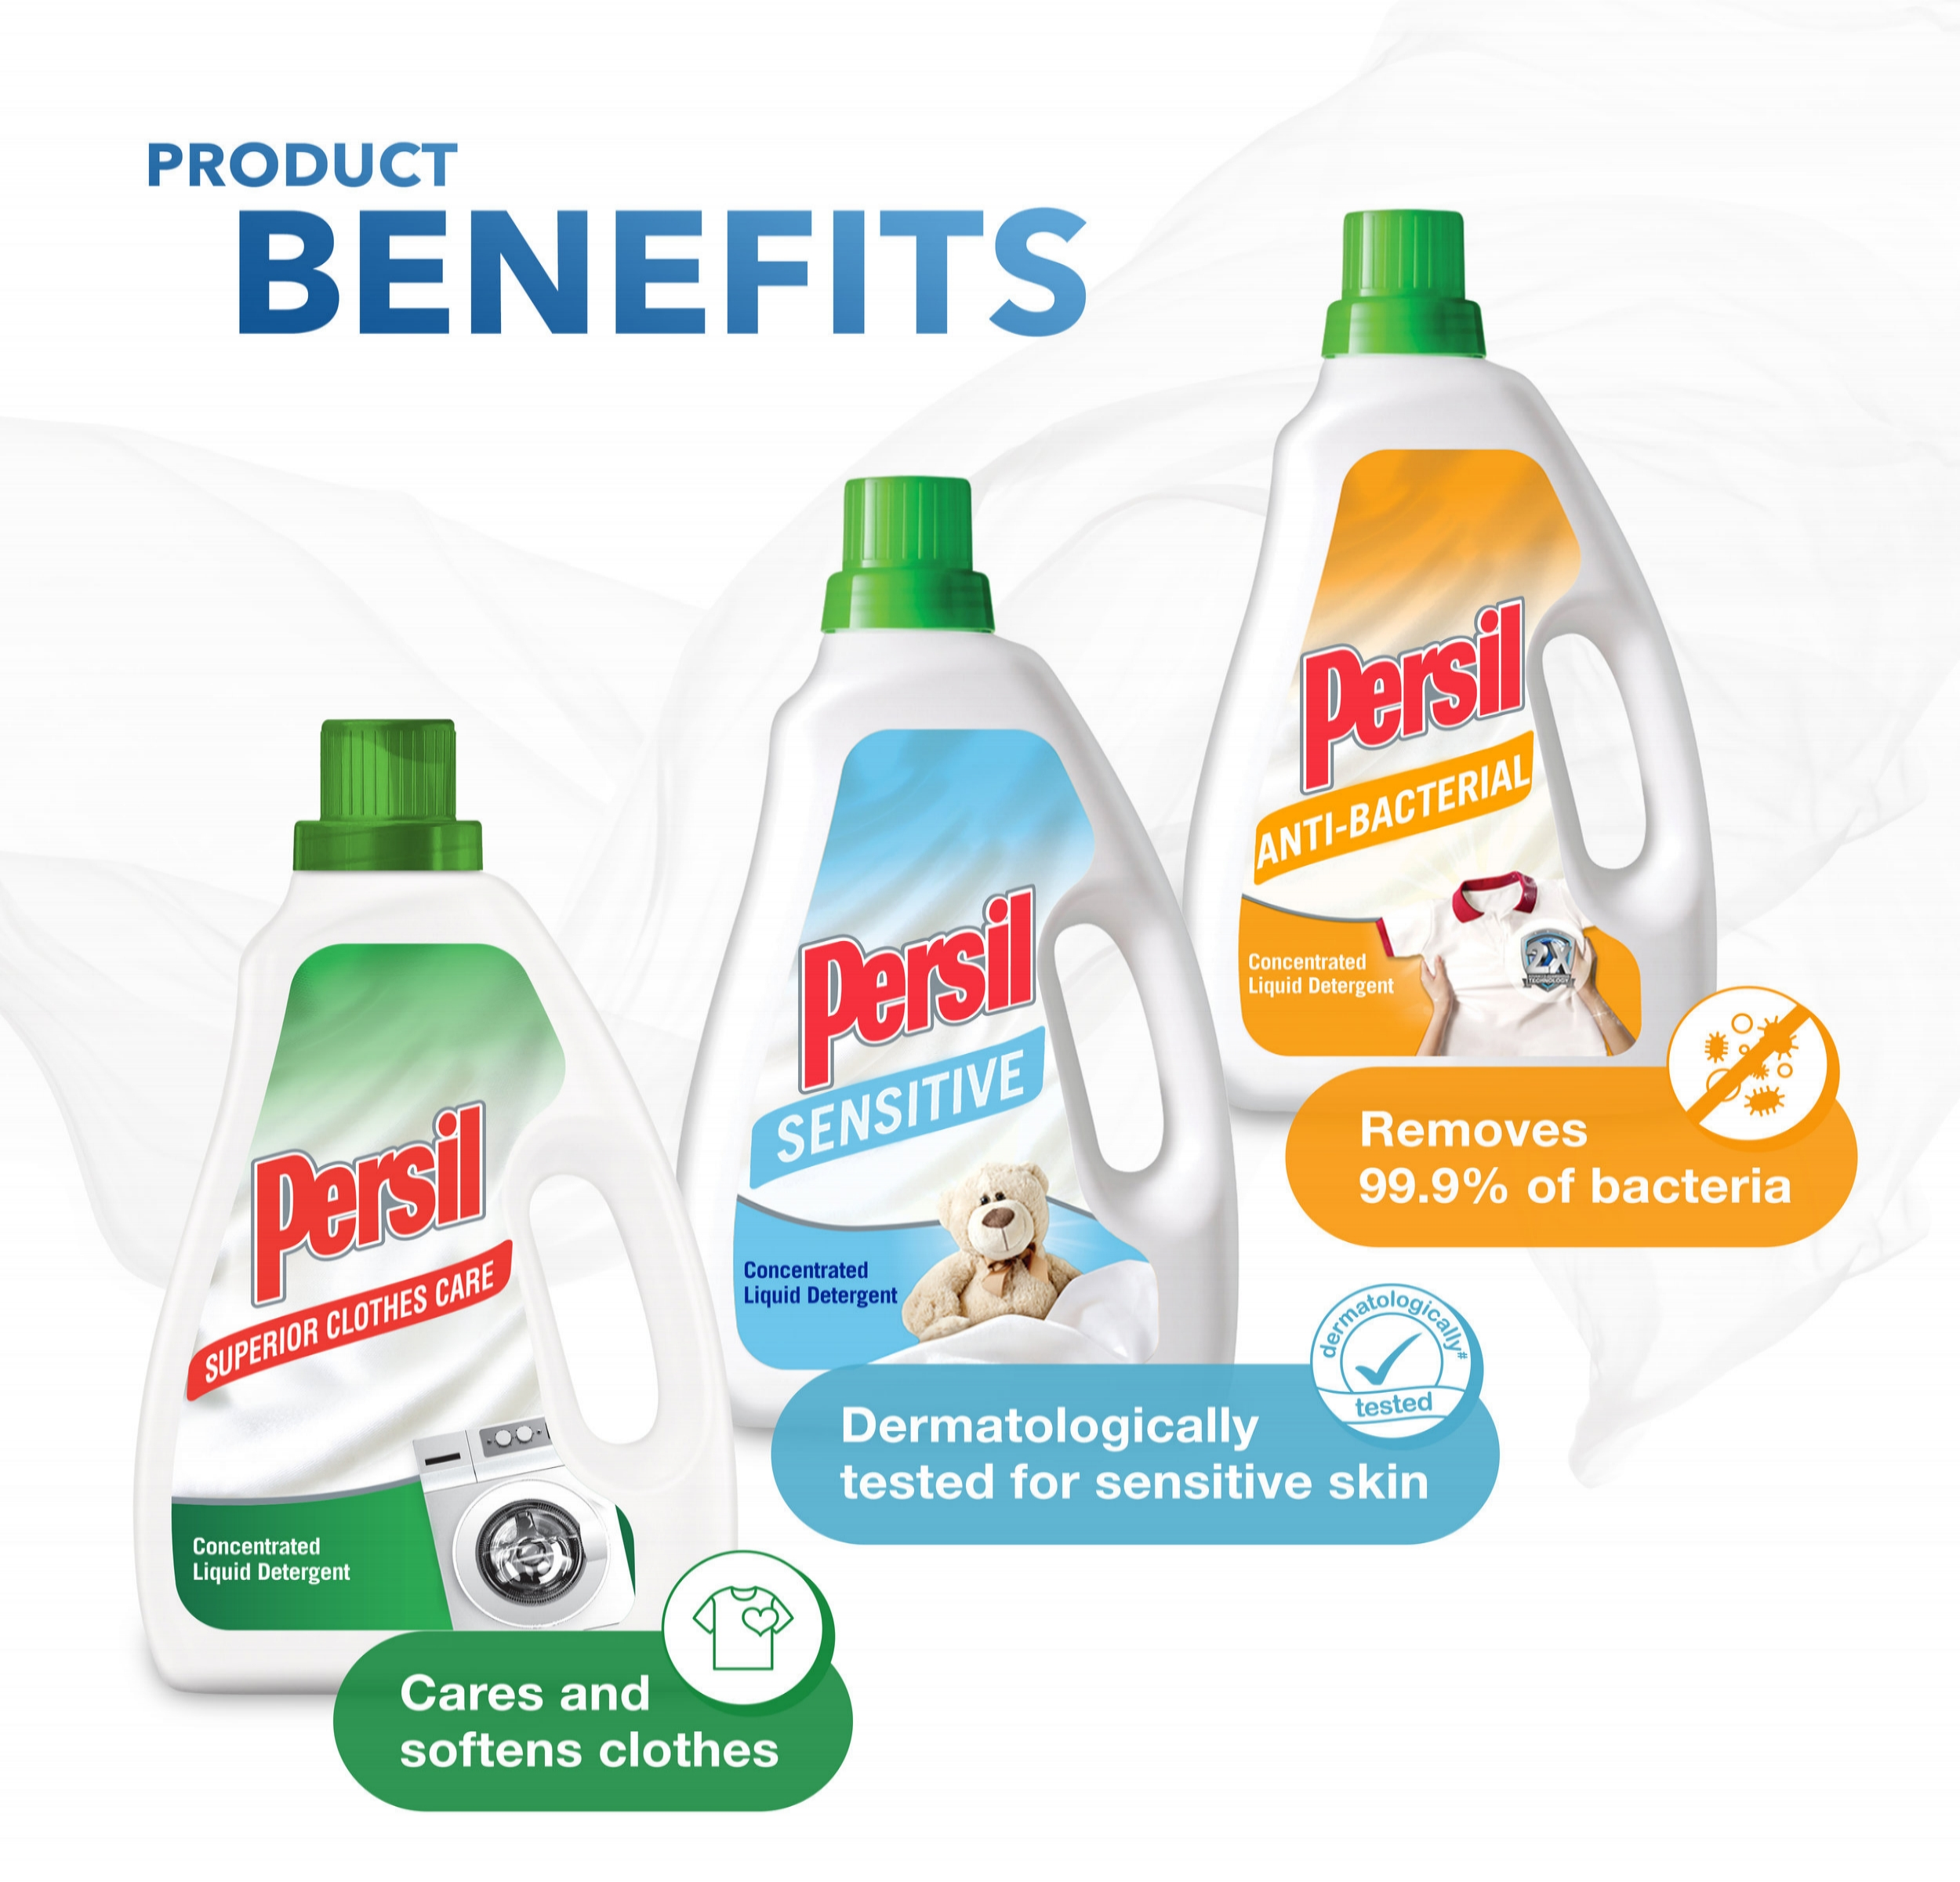 - Best for front load washing machines, Persil offers a range of products with additional benefits, on top of powerful stain removal. From Superior Clothes Care which helps to soften your clothes to Sensitive variant suitable for delicate skin, you can choose the best detergent which meets you and your family's different needs.